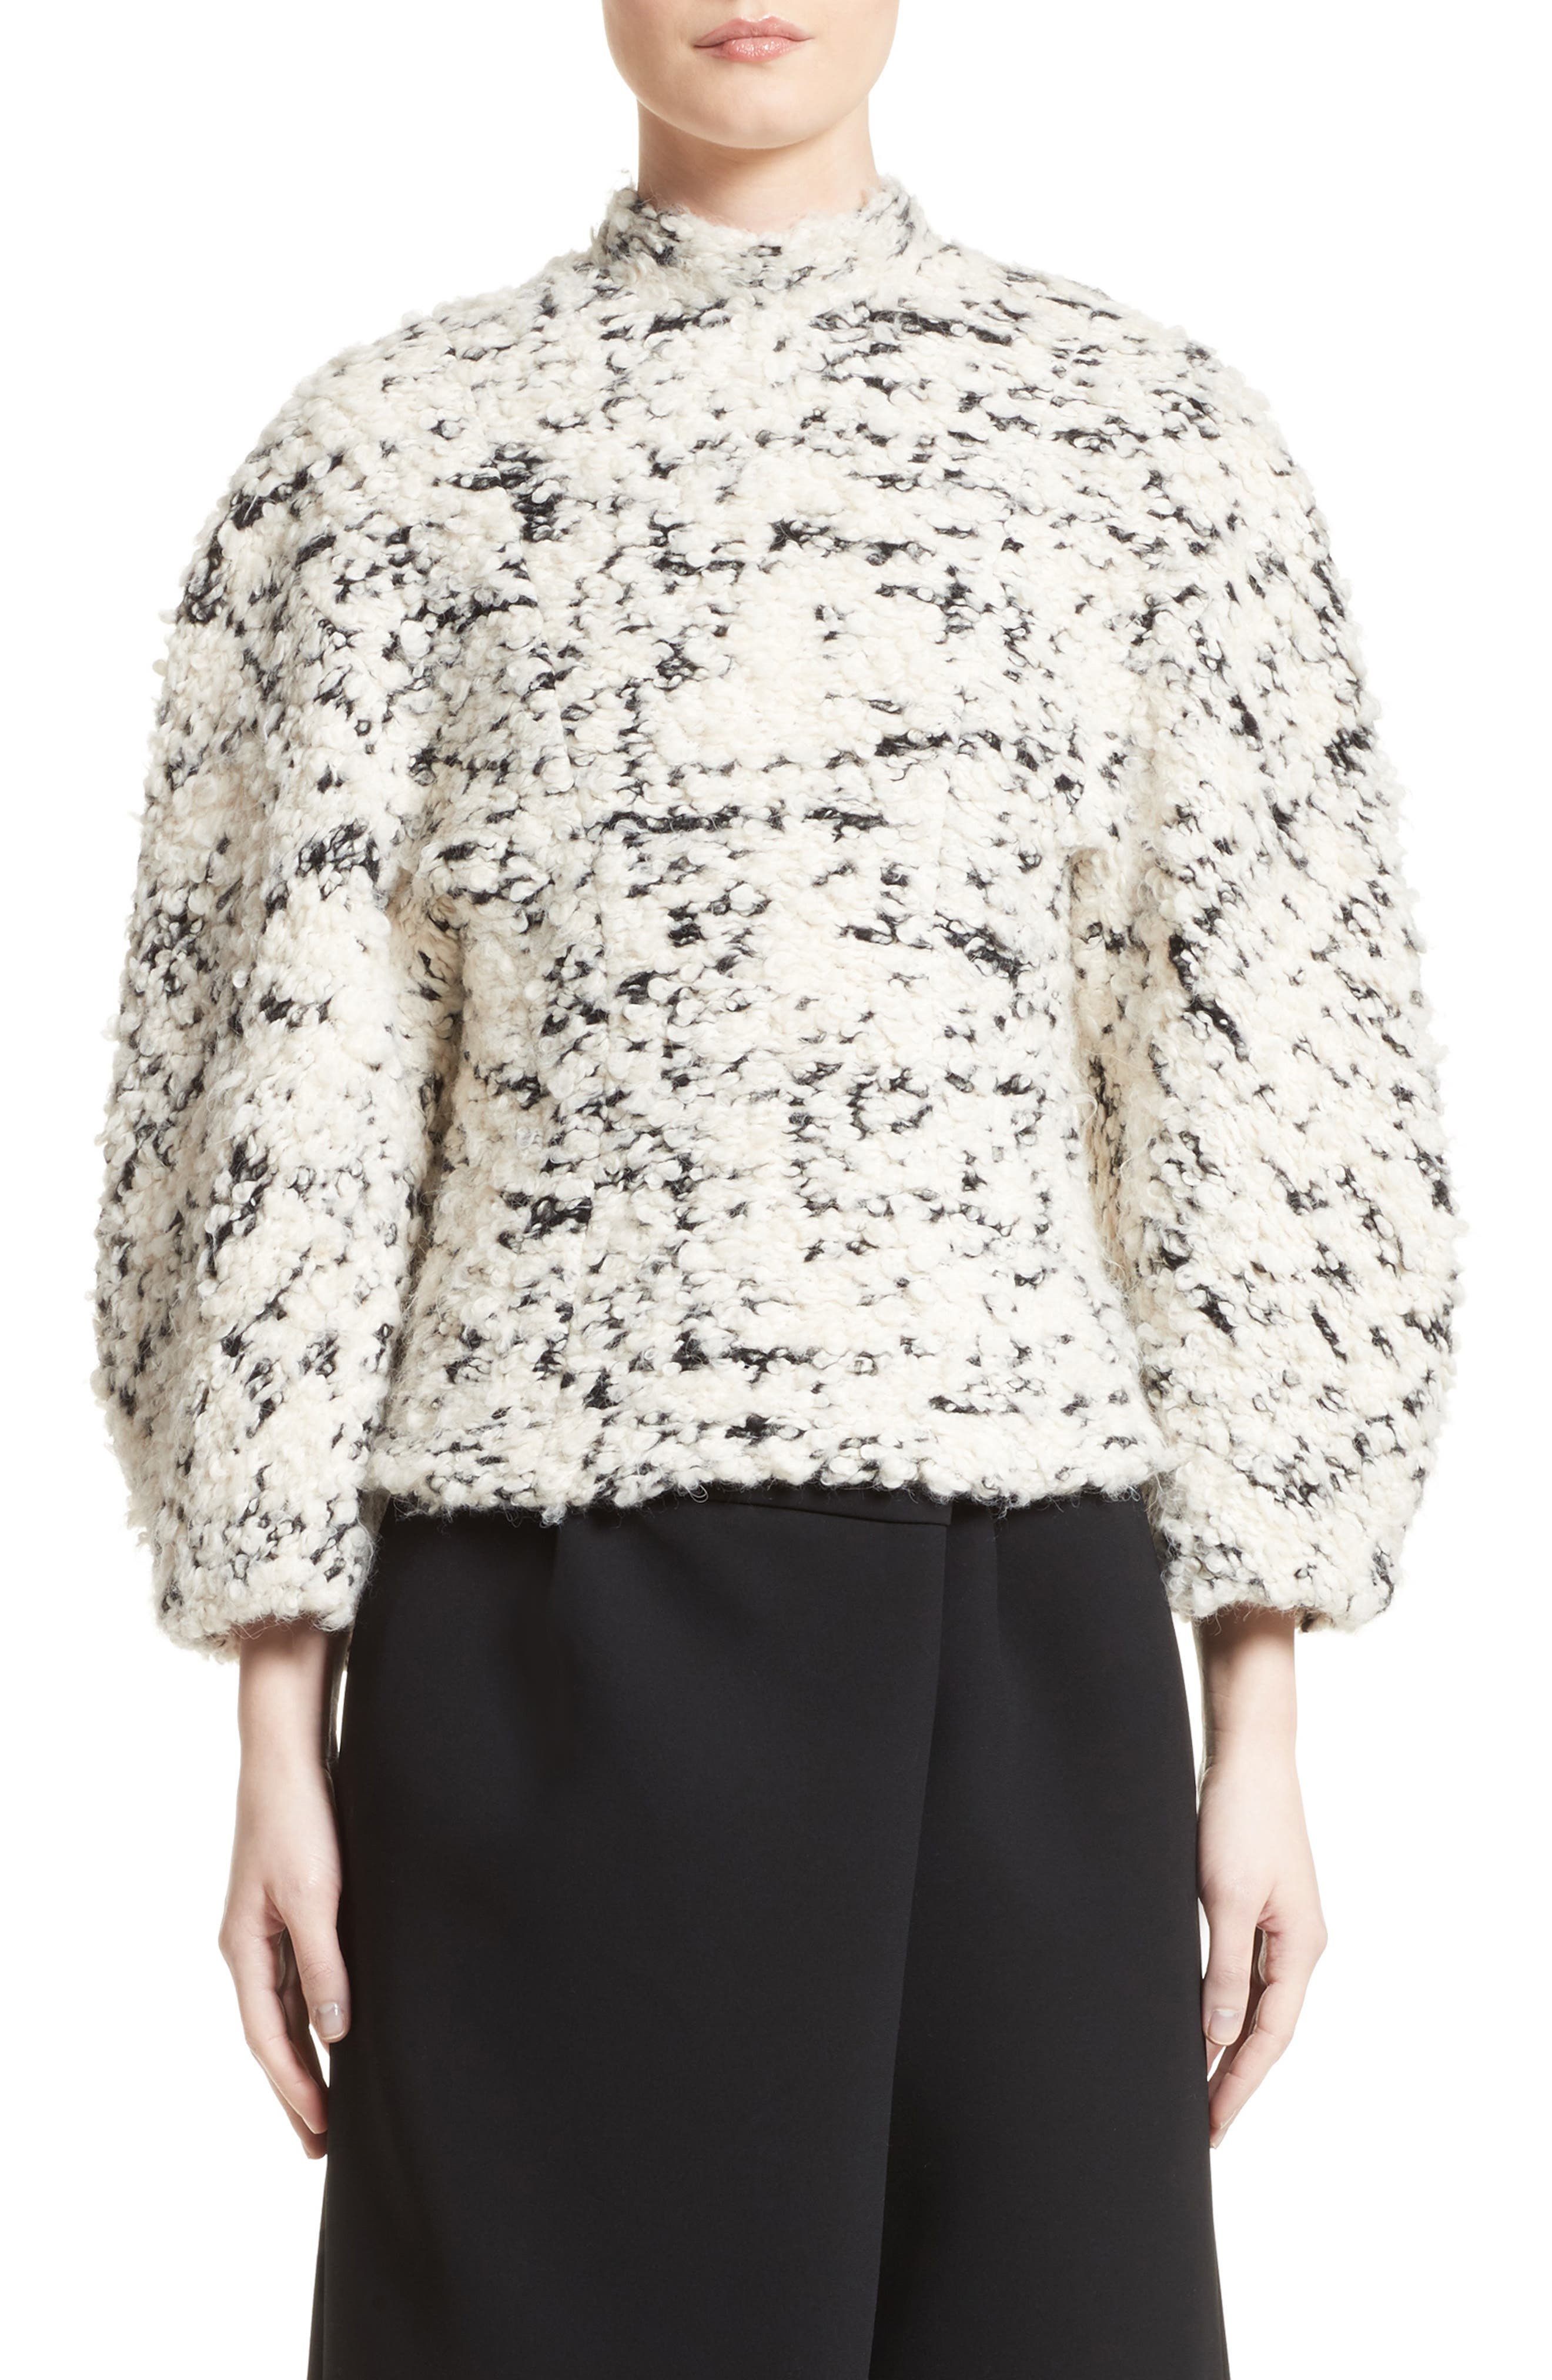 Main Image - A.W.A.K.E. Textured Mock Neck Sweater